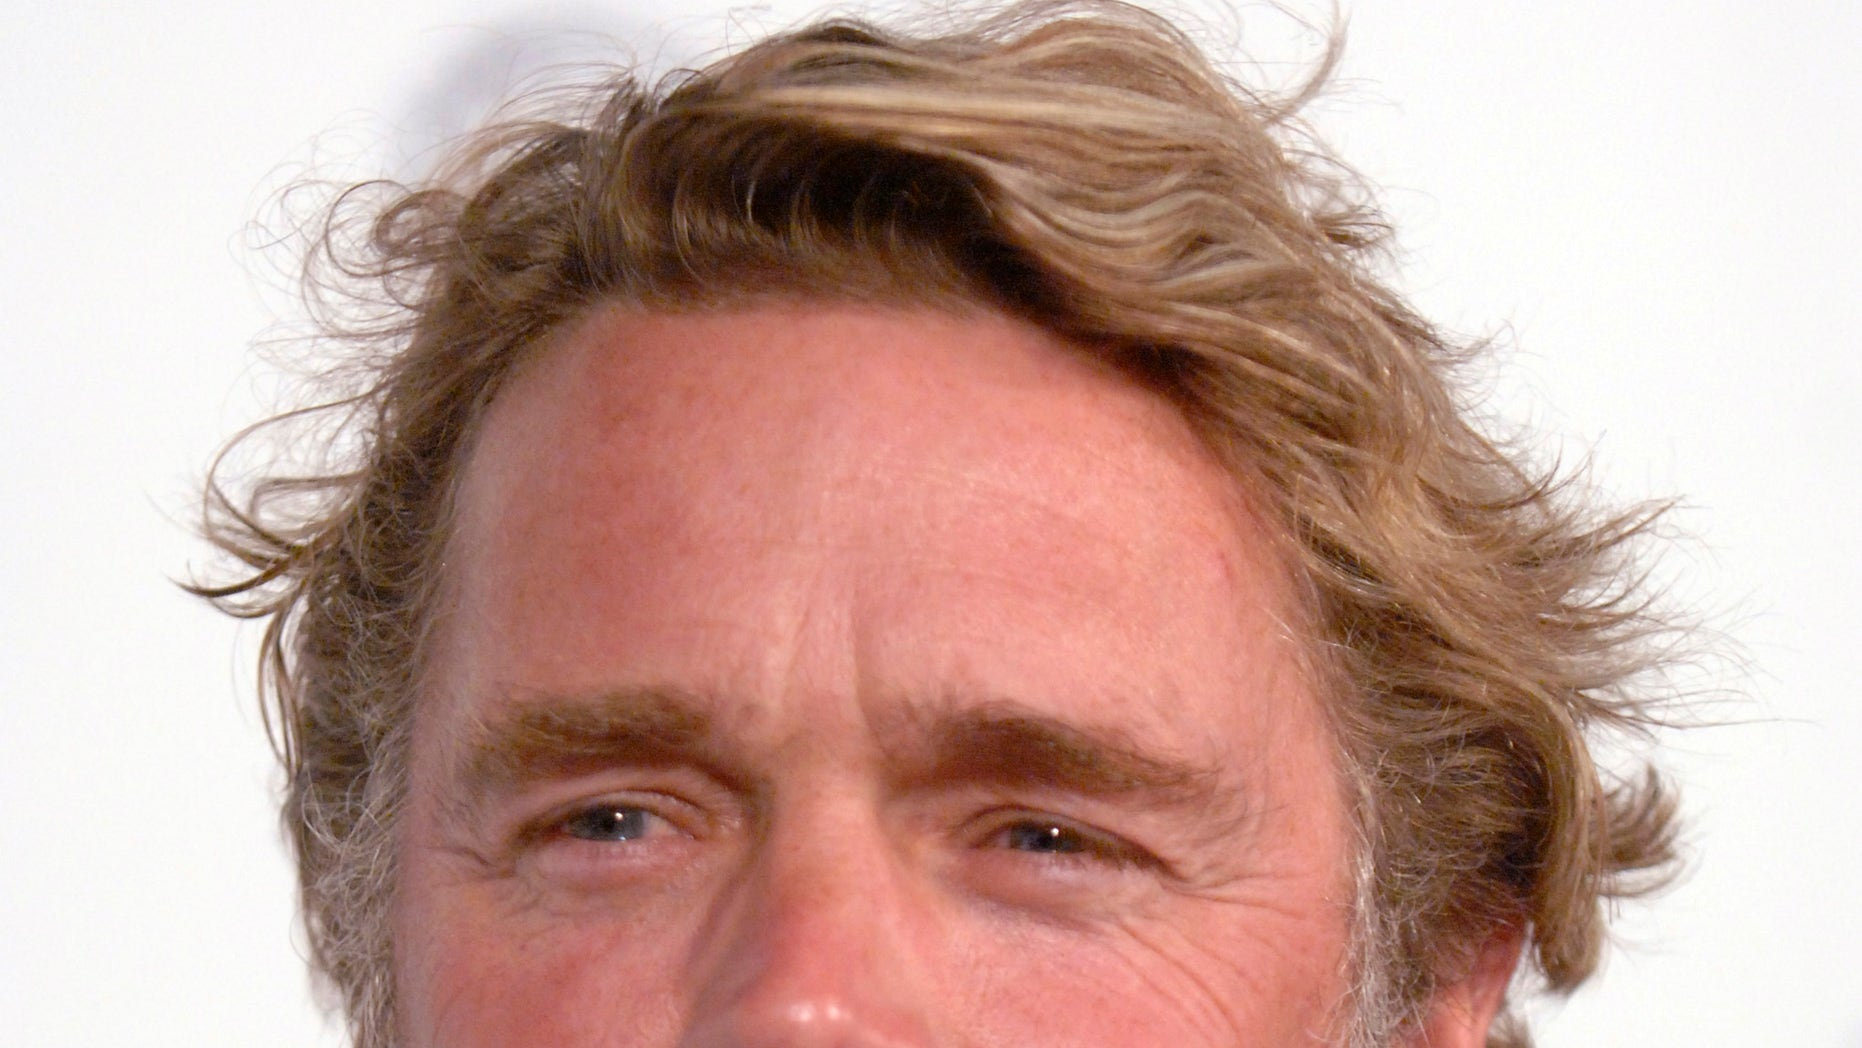 """October 20, 2007. Series guest star John Schneider attends the season five premiere screening of the FX series """"nip/tuck"""" held at the Paramount Theatre in Hollywood."""